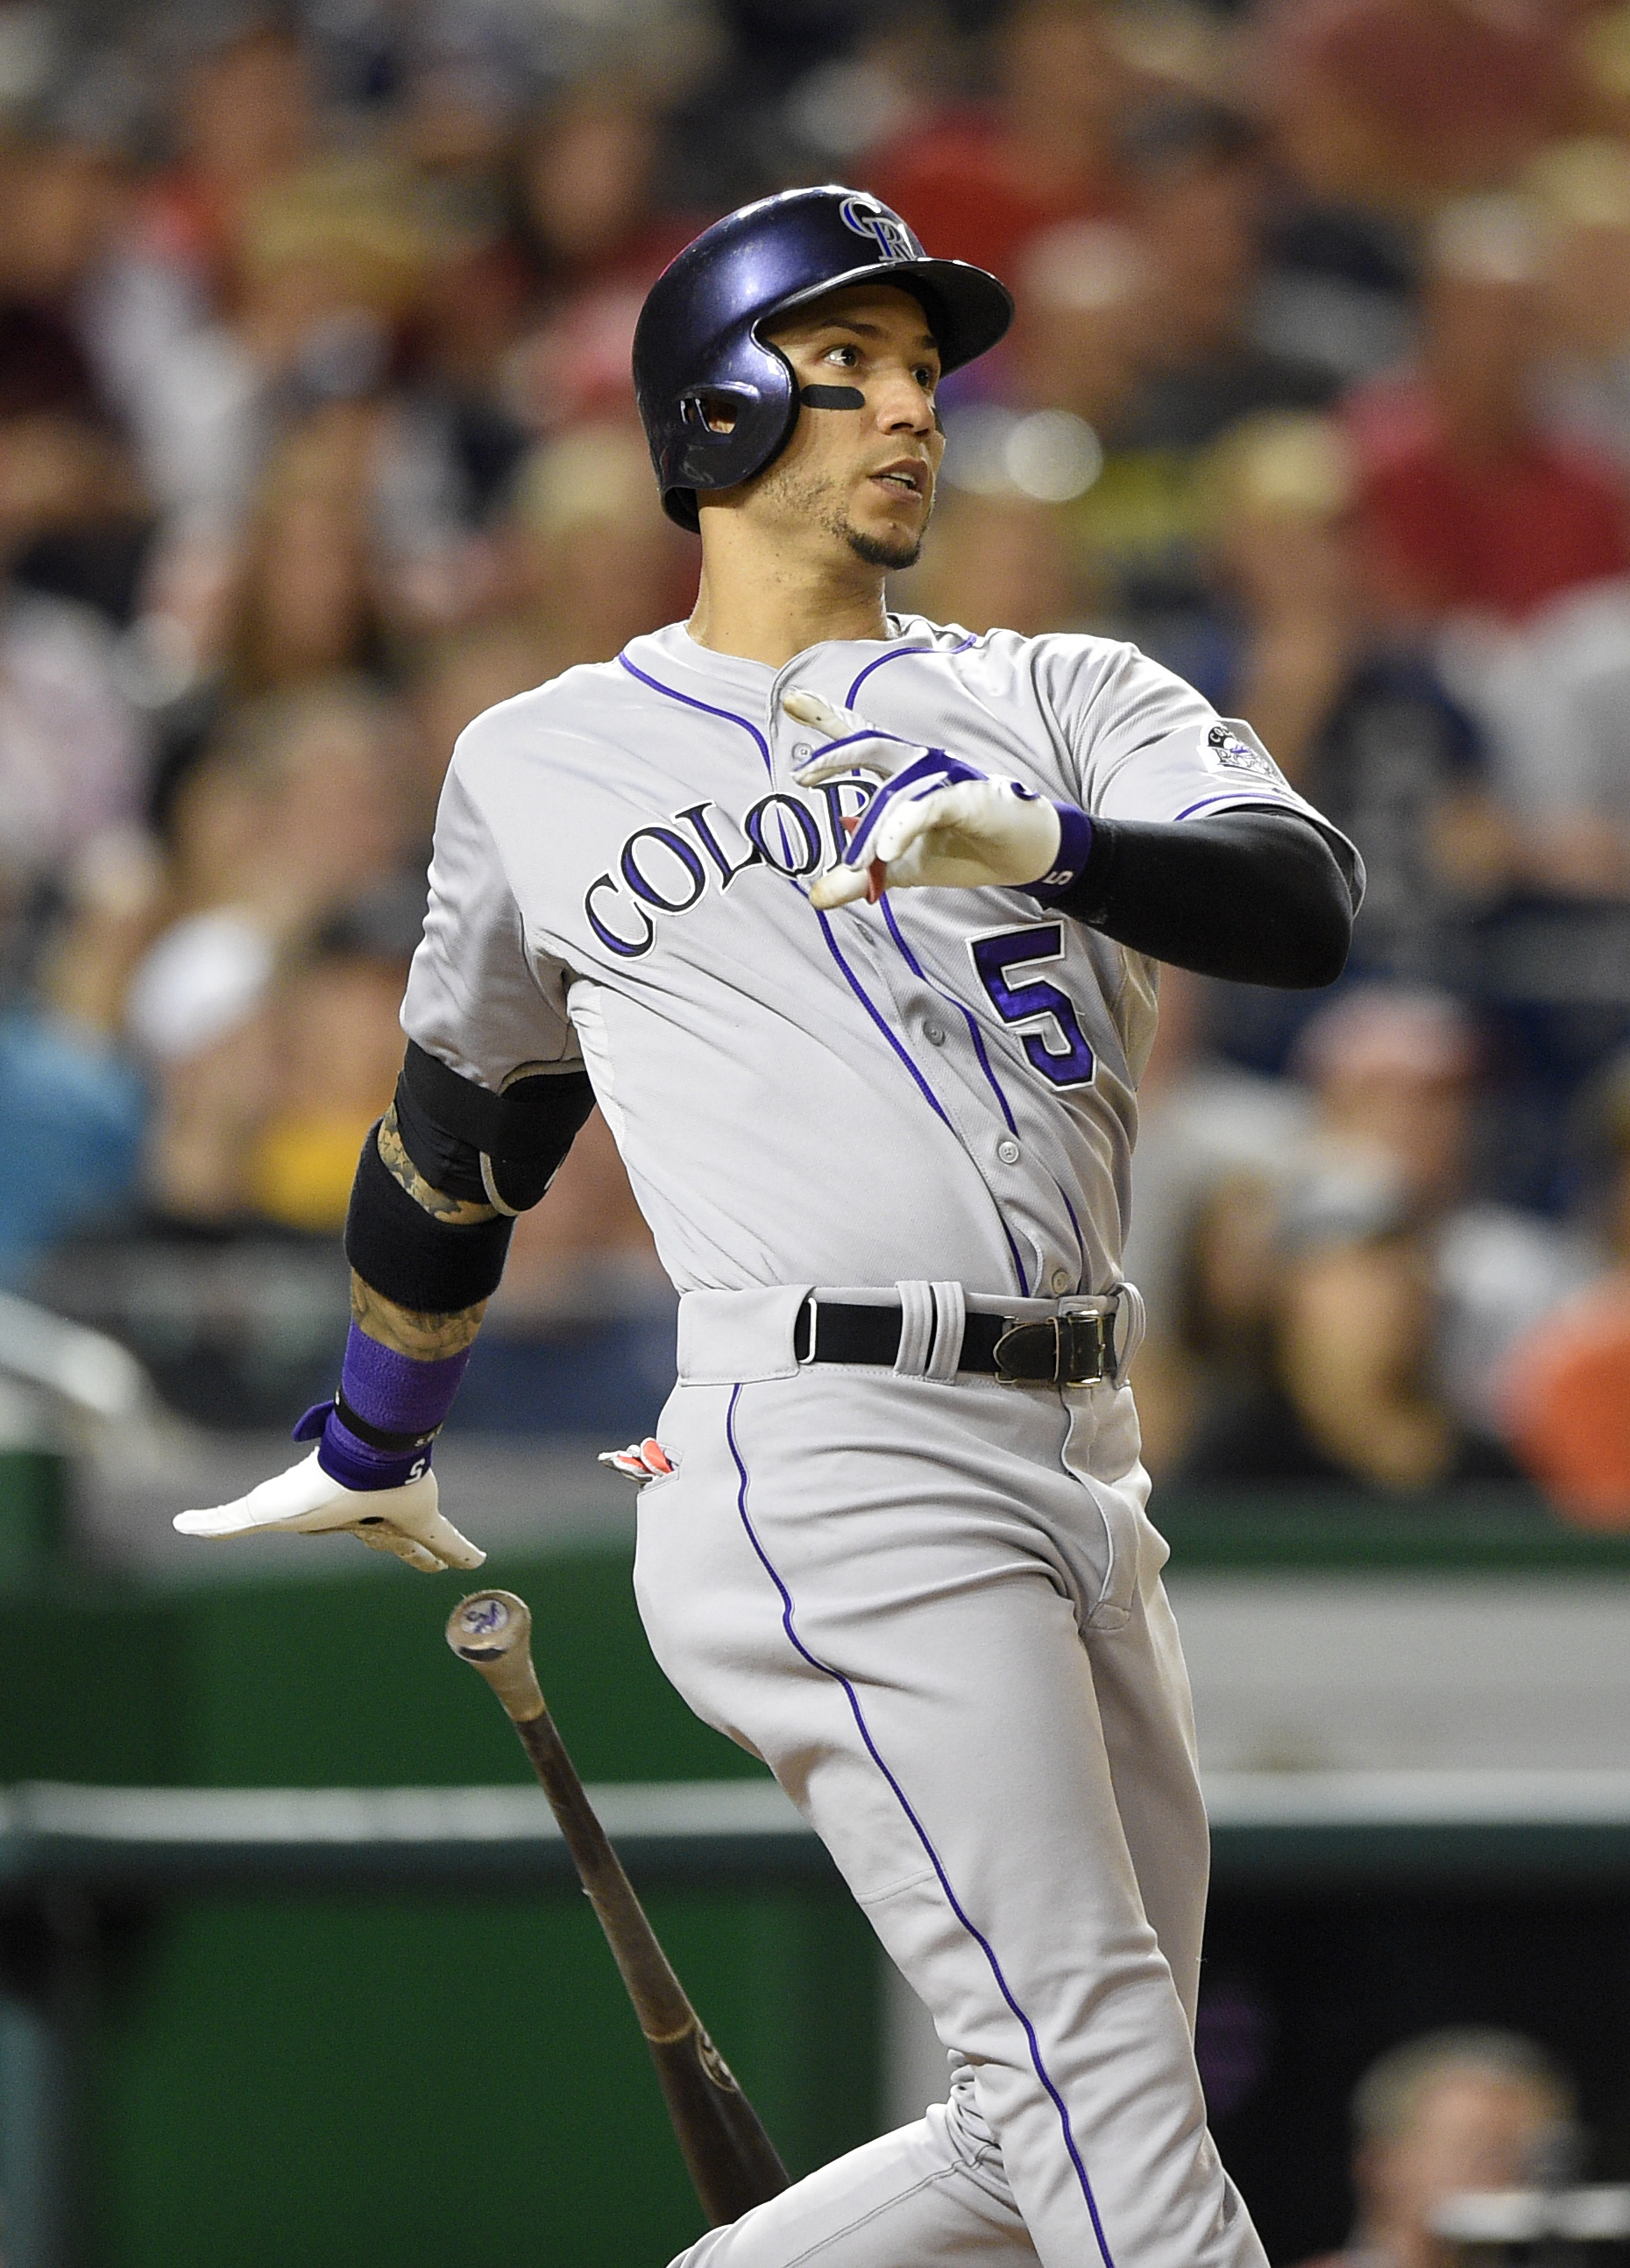 Colorado Rockies' Carlos Gonzalez watches his grand slam during the eighth inning of a baseball game against the Washington Nationals, Friday, Aug. 7, 2015, in Washington. The Rockies won 5-4. (AP Photo/Nick Wass)